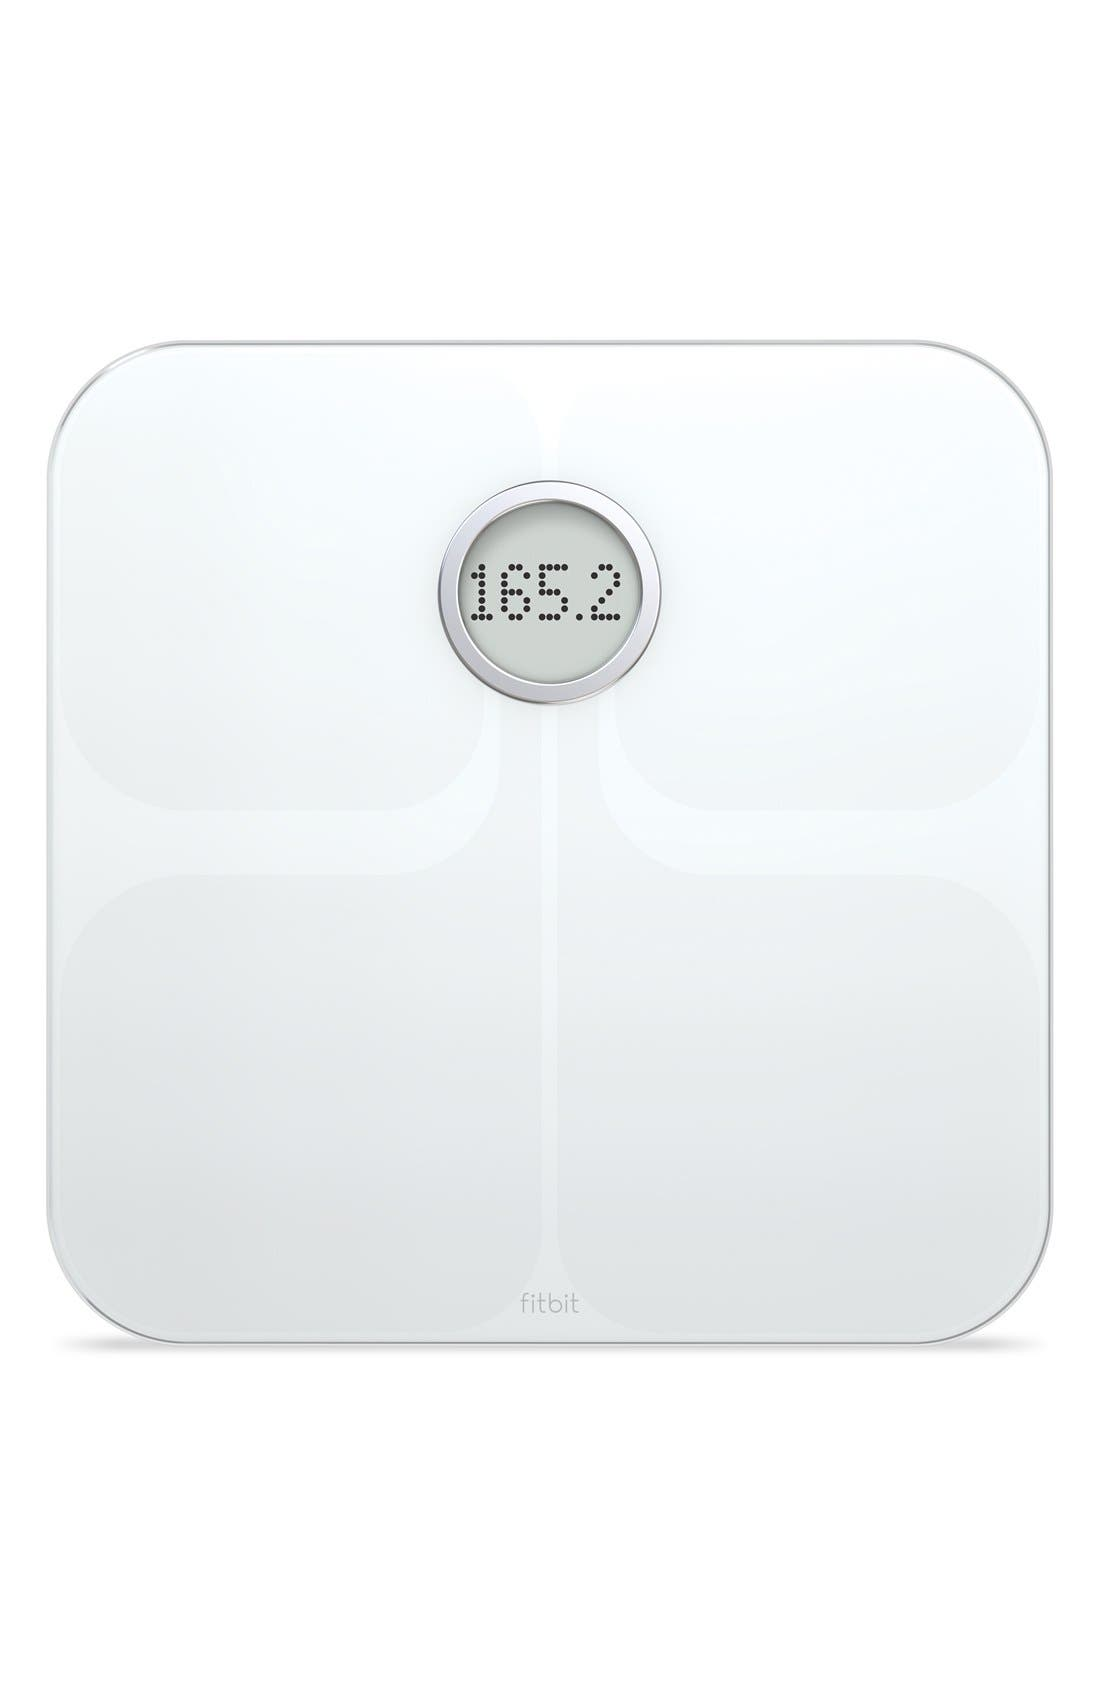 Main Image - Fitbit 'Aria' Wireless Smart Scale